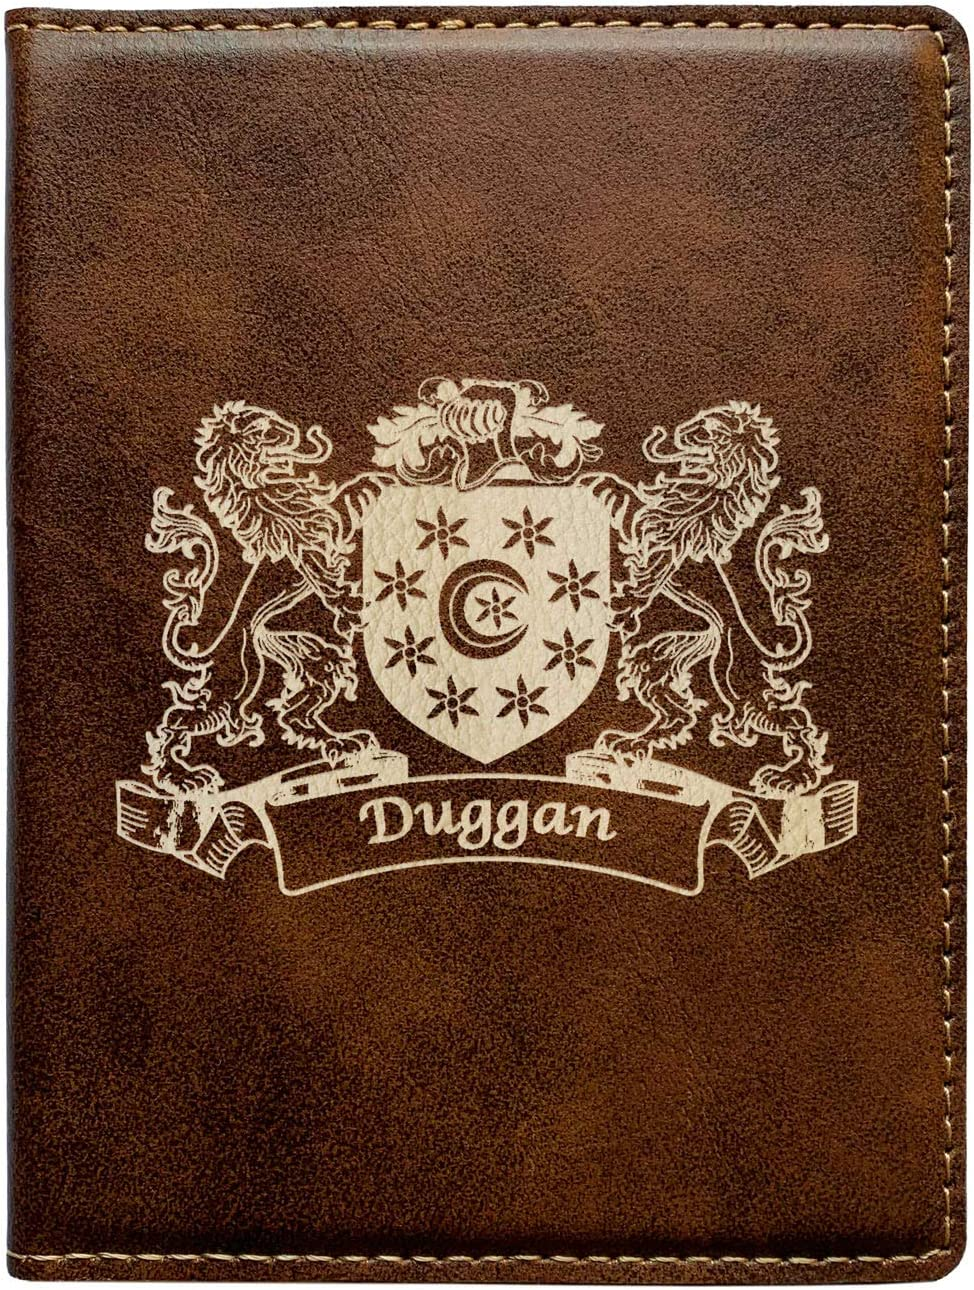 Duggan Irish Coat of Arms Leather Passport Wallet